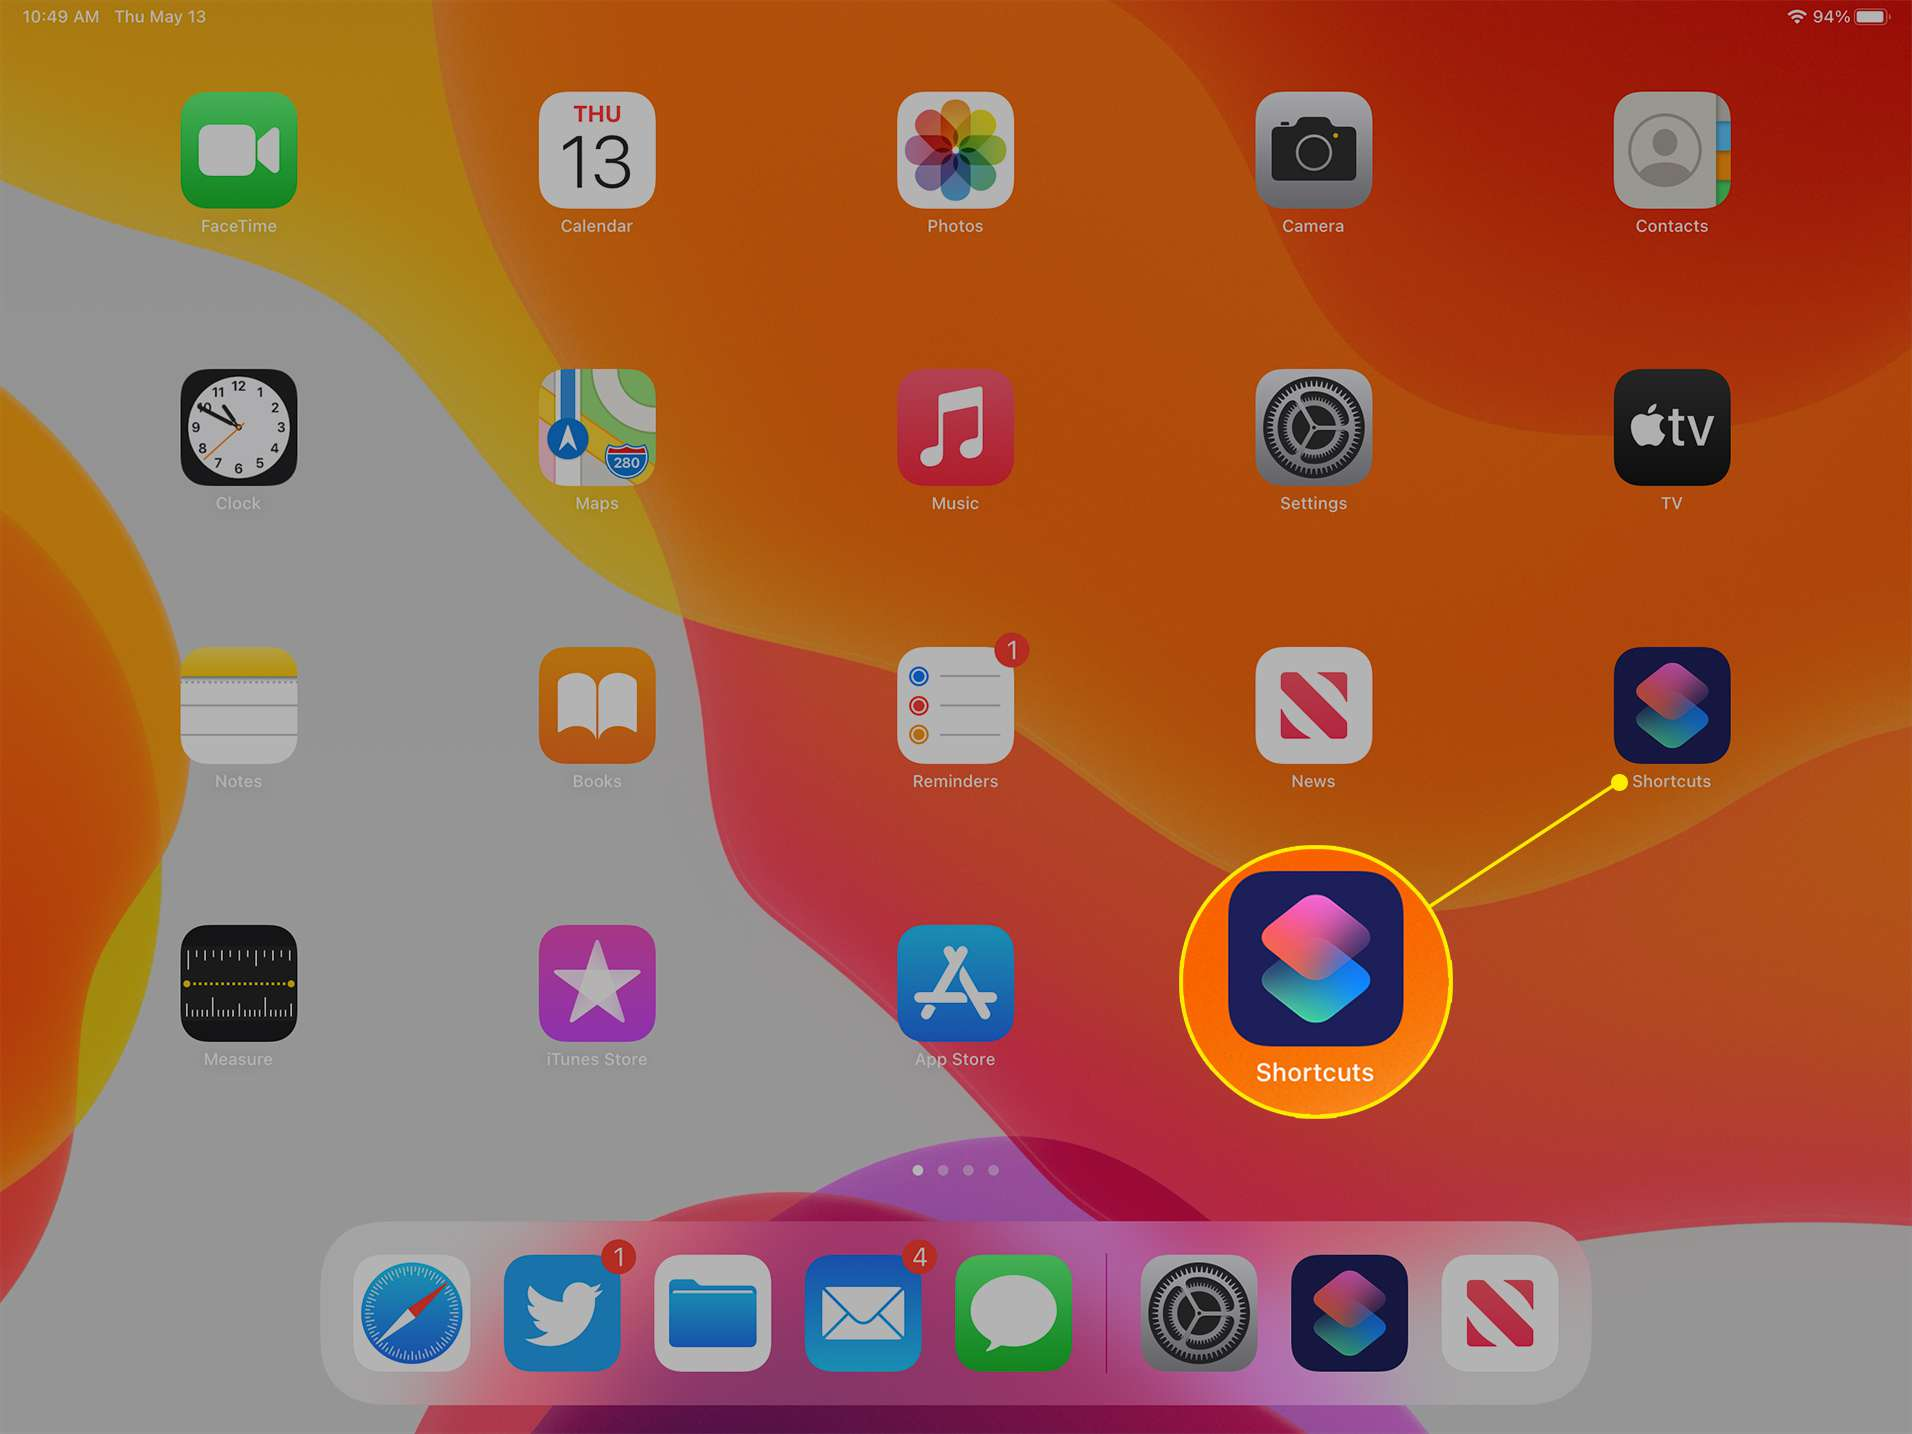 iPad desktop with the Shortcuts icon highlighted